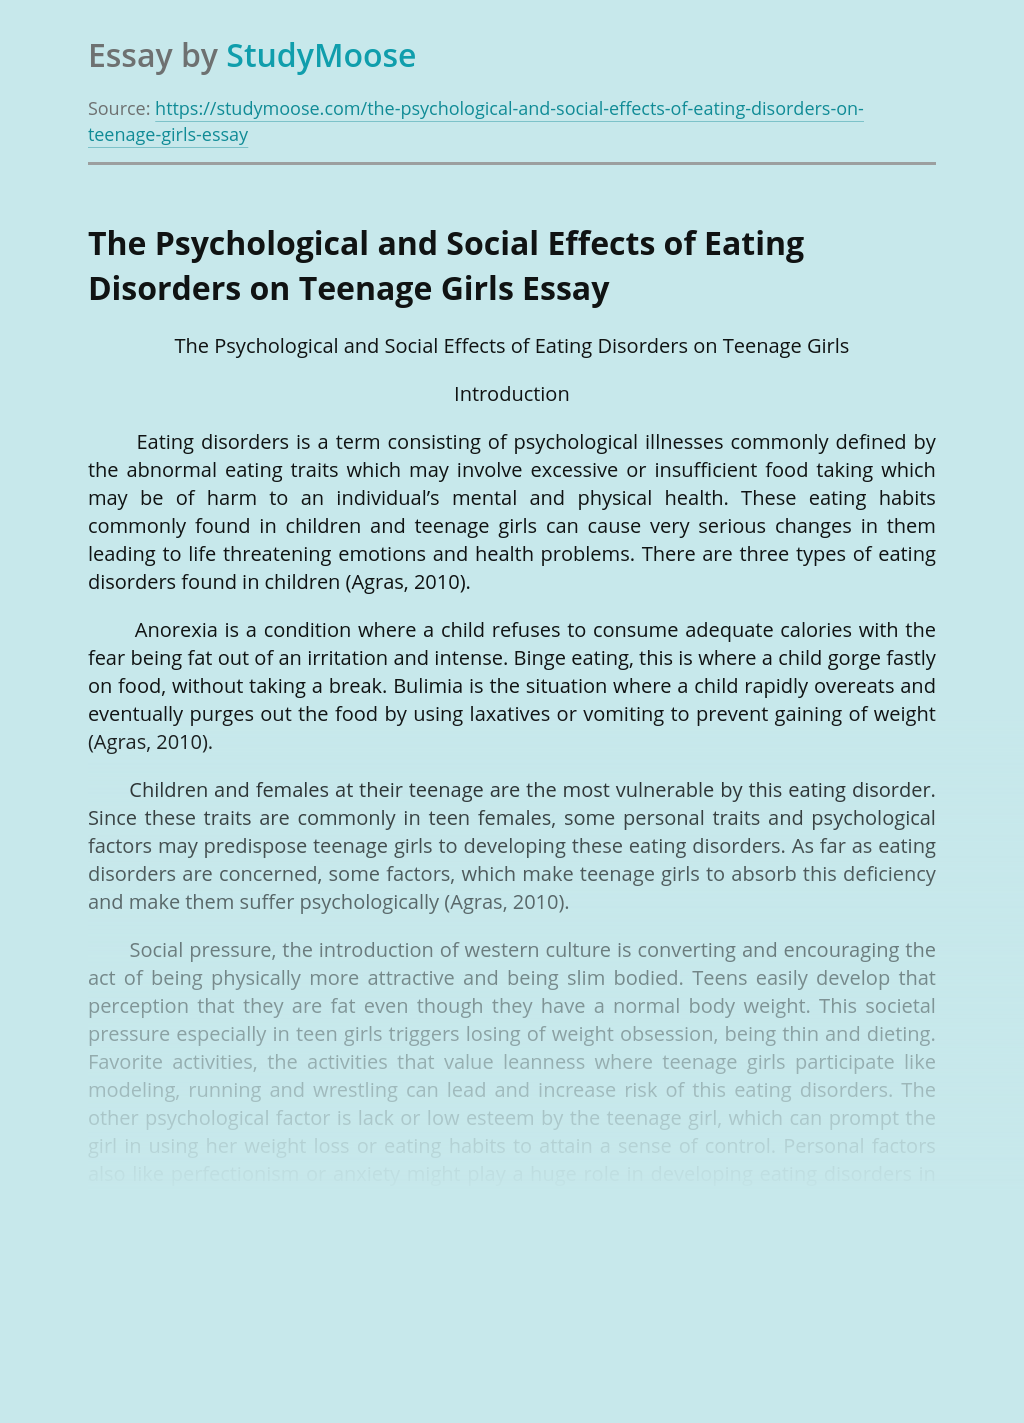 The Psychological and Social Effects of Eating Disorders on Teenage Girls